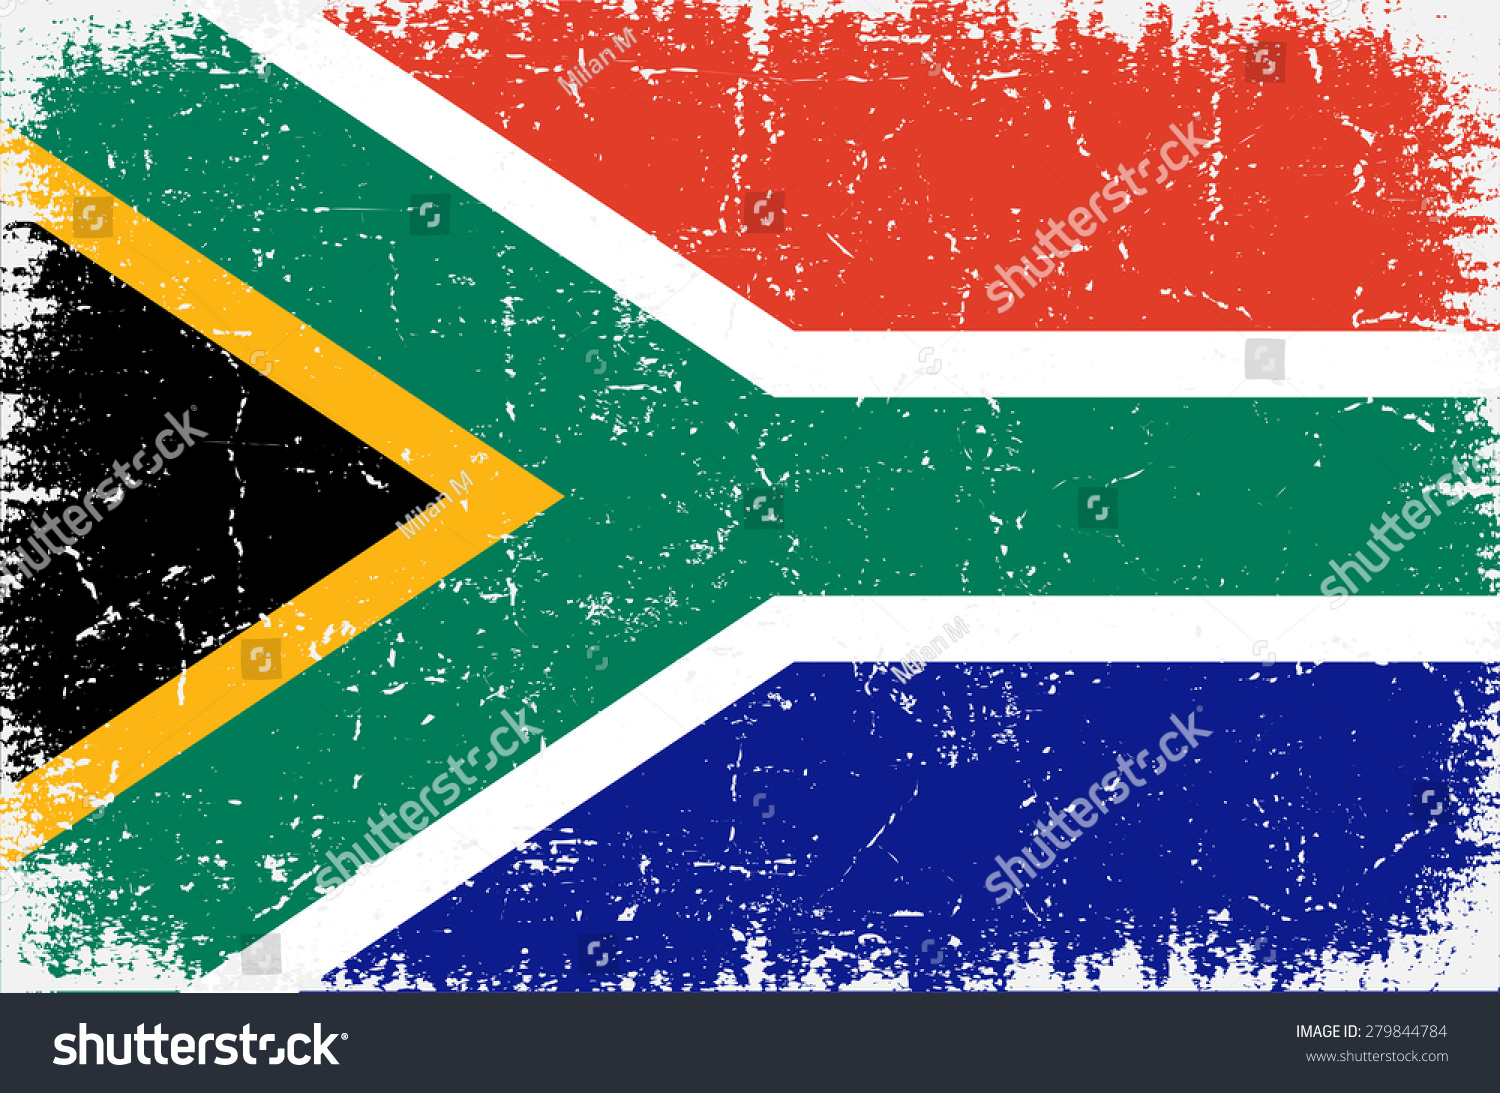 Grunge South Africa Flag South African Flag With Grunge